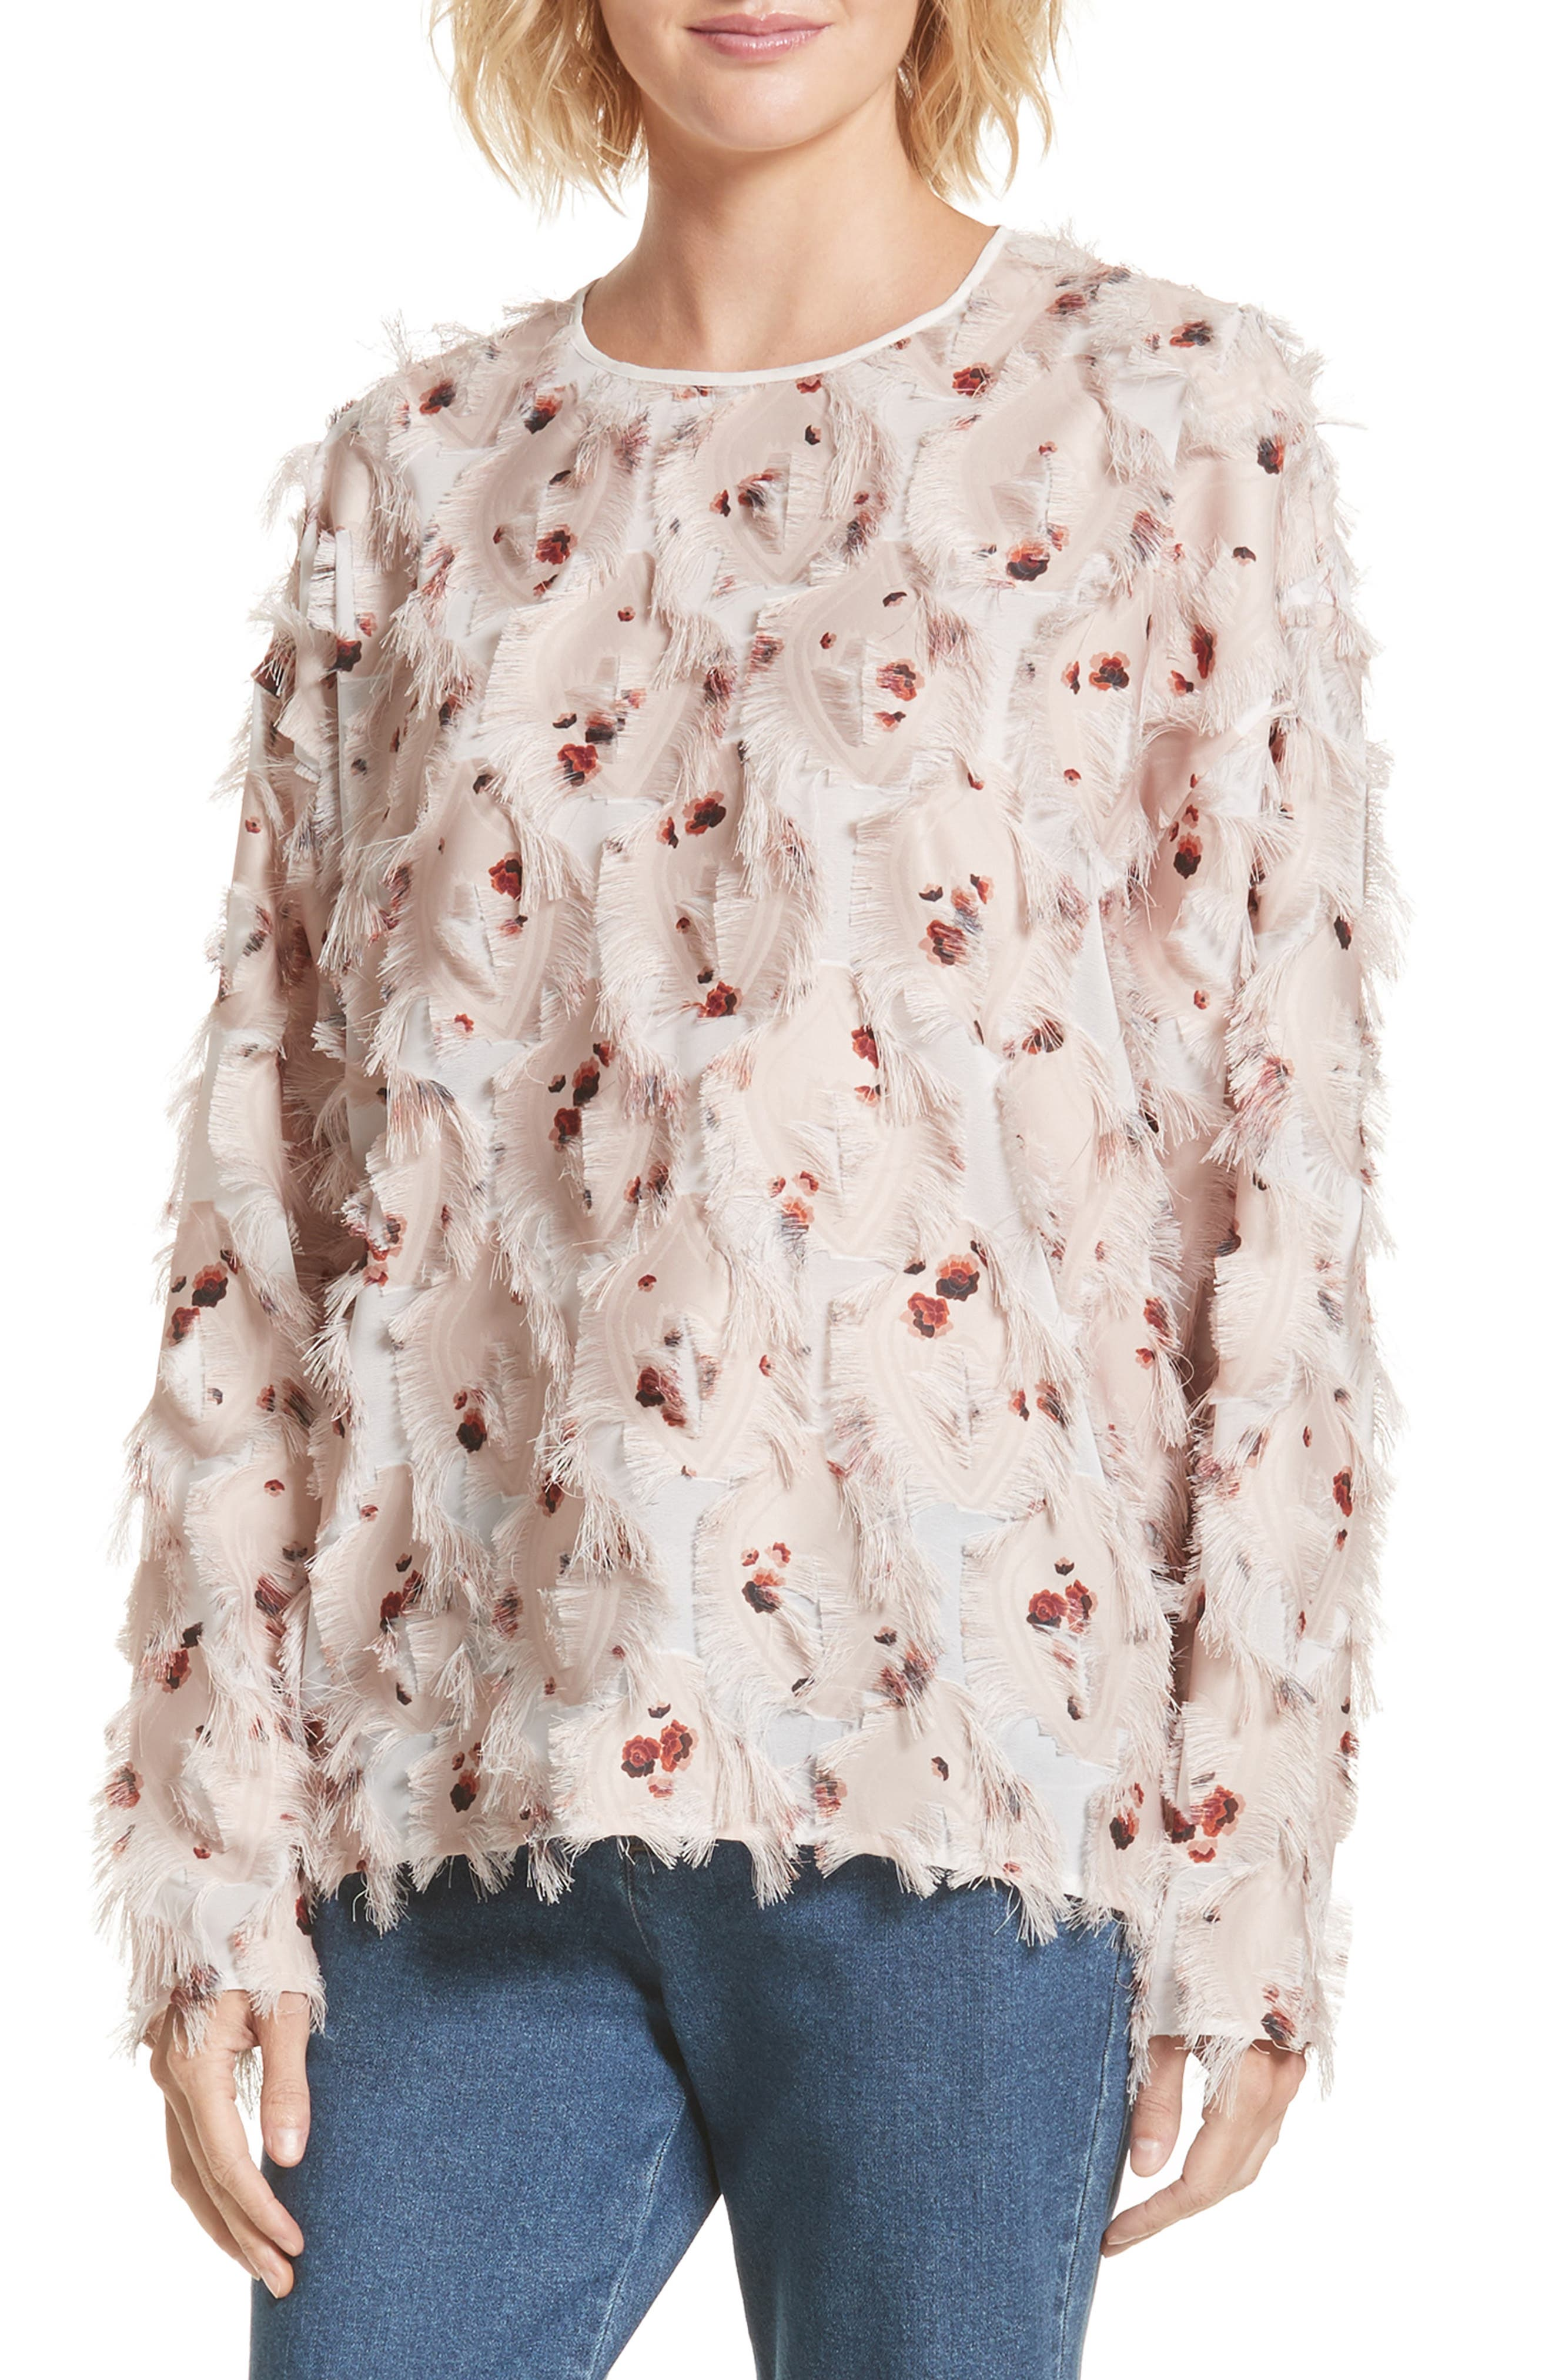 Main Image - See by Chloé Feather Jacquard Blouse